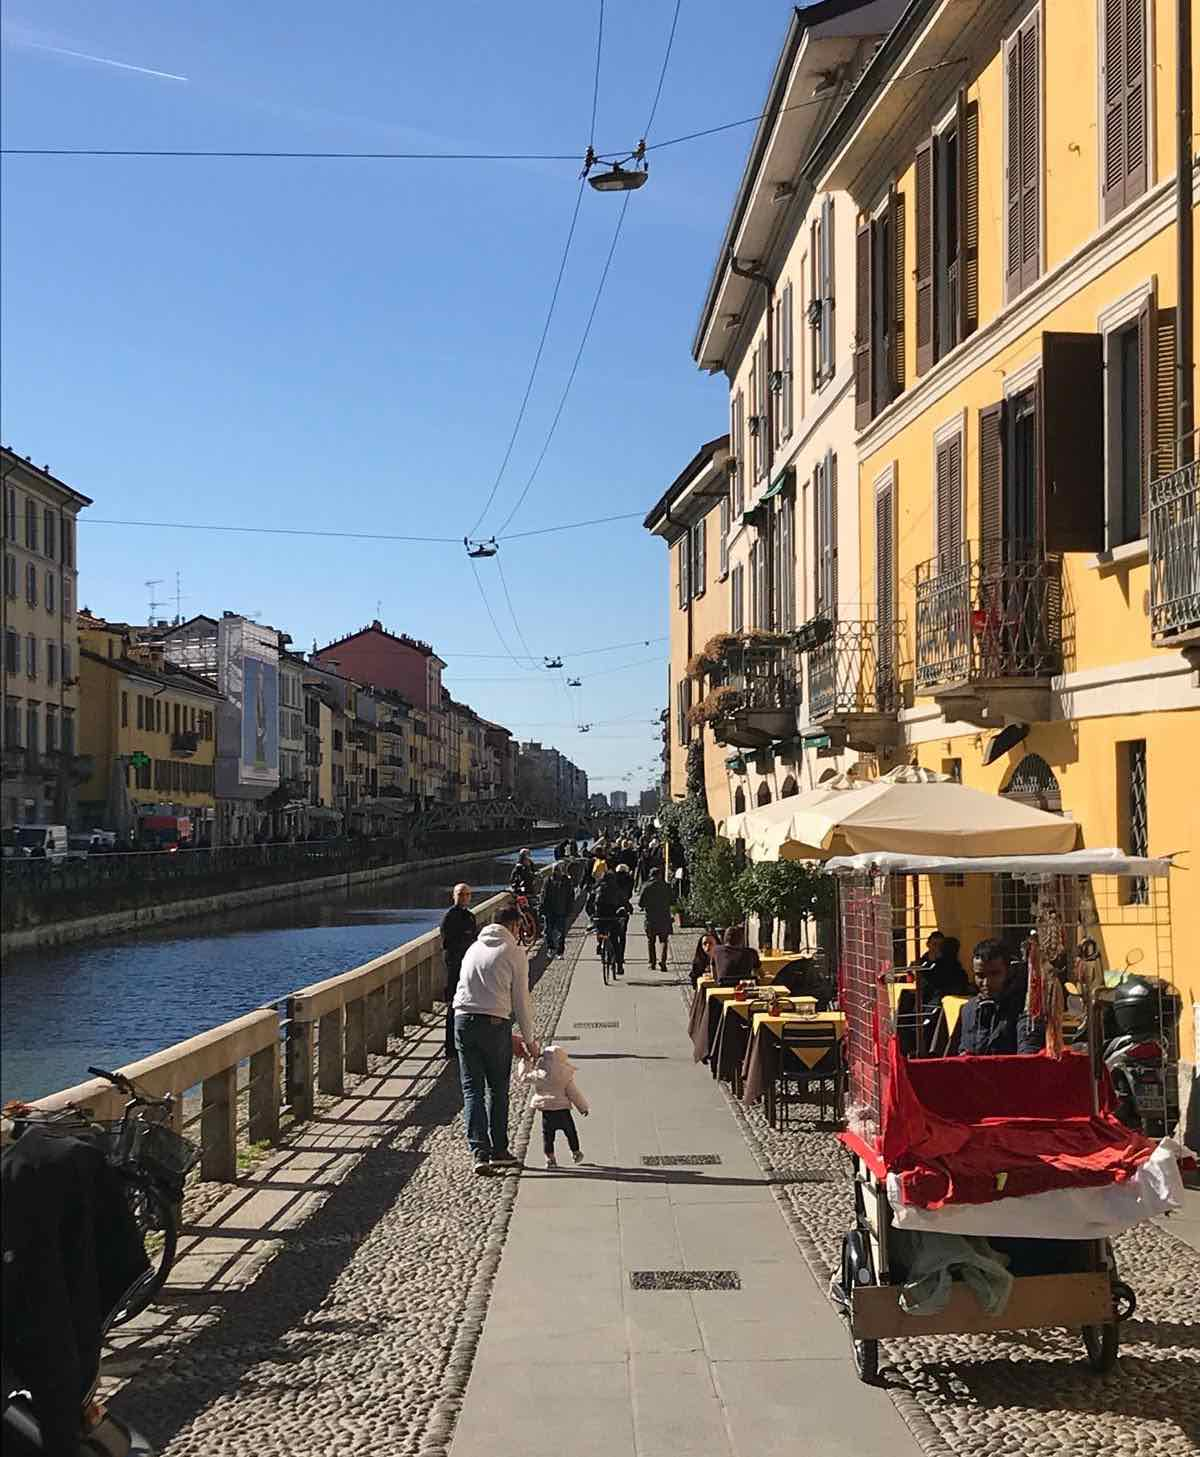 Navigli in Milan on Feb 29, 2020 . Photo by Enrico Zilli.